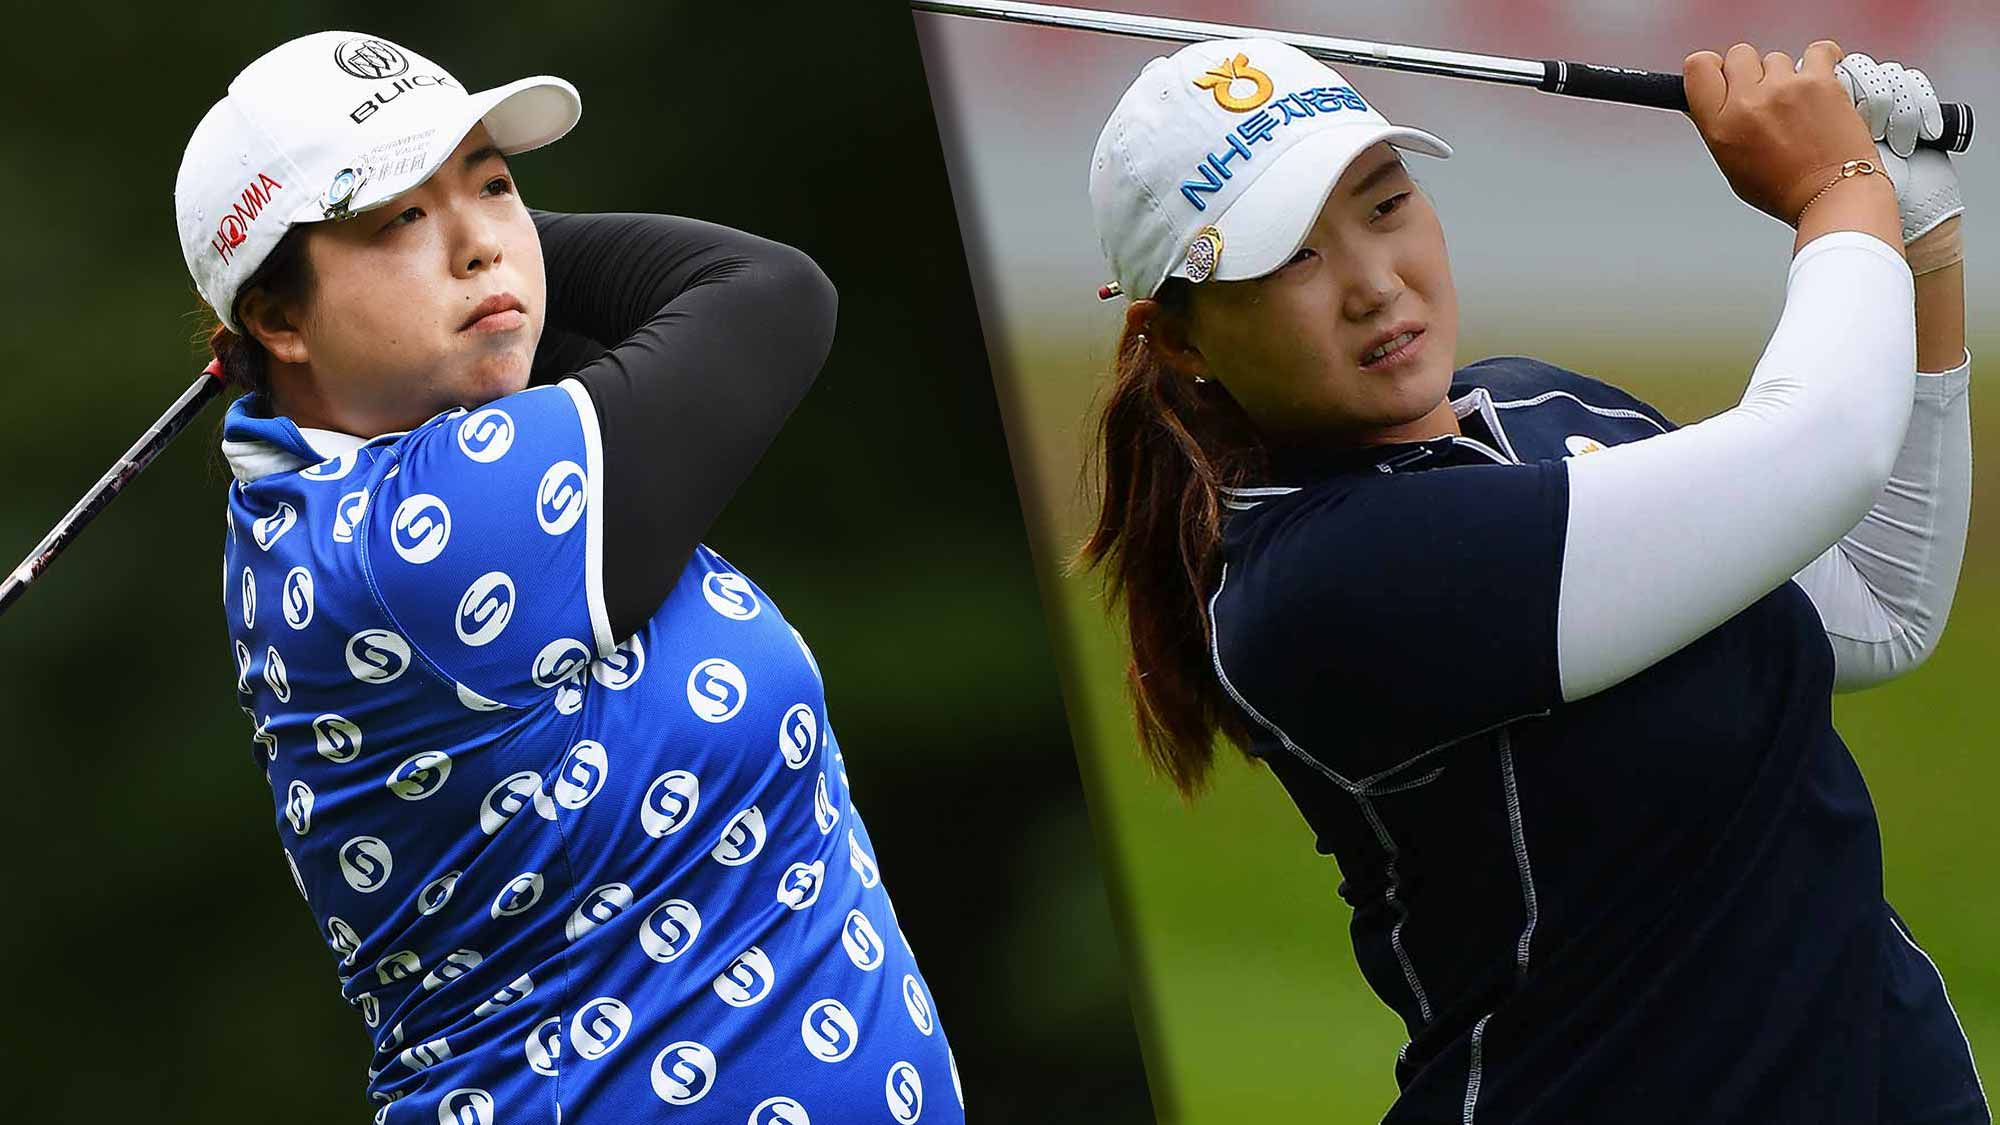 Shanshan Feng and Mirim Lee